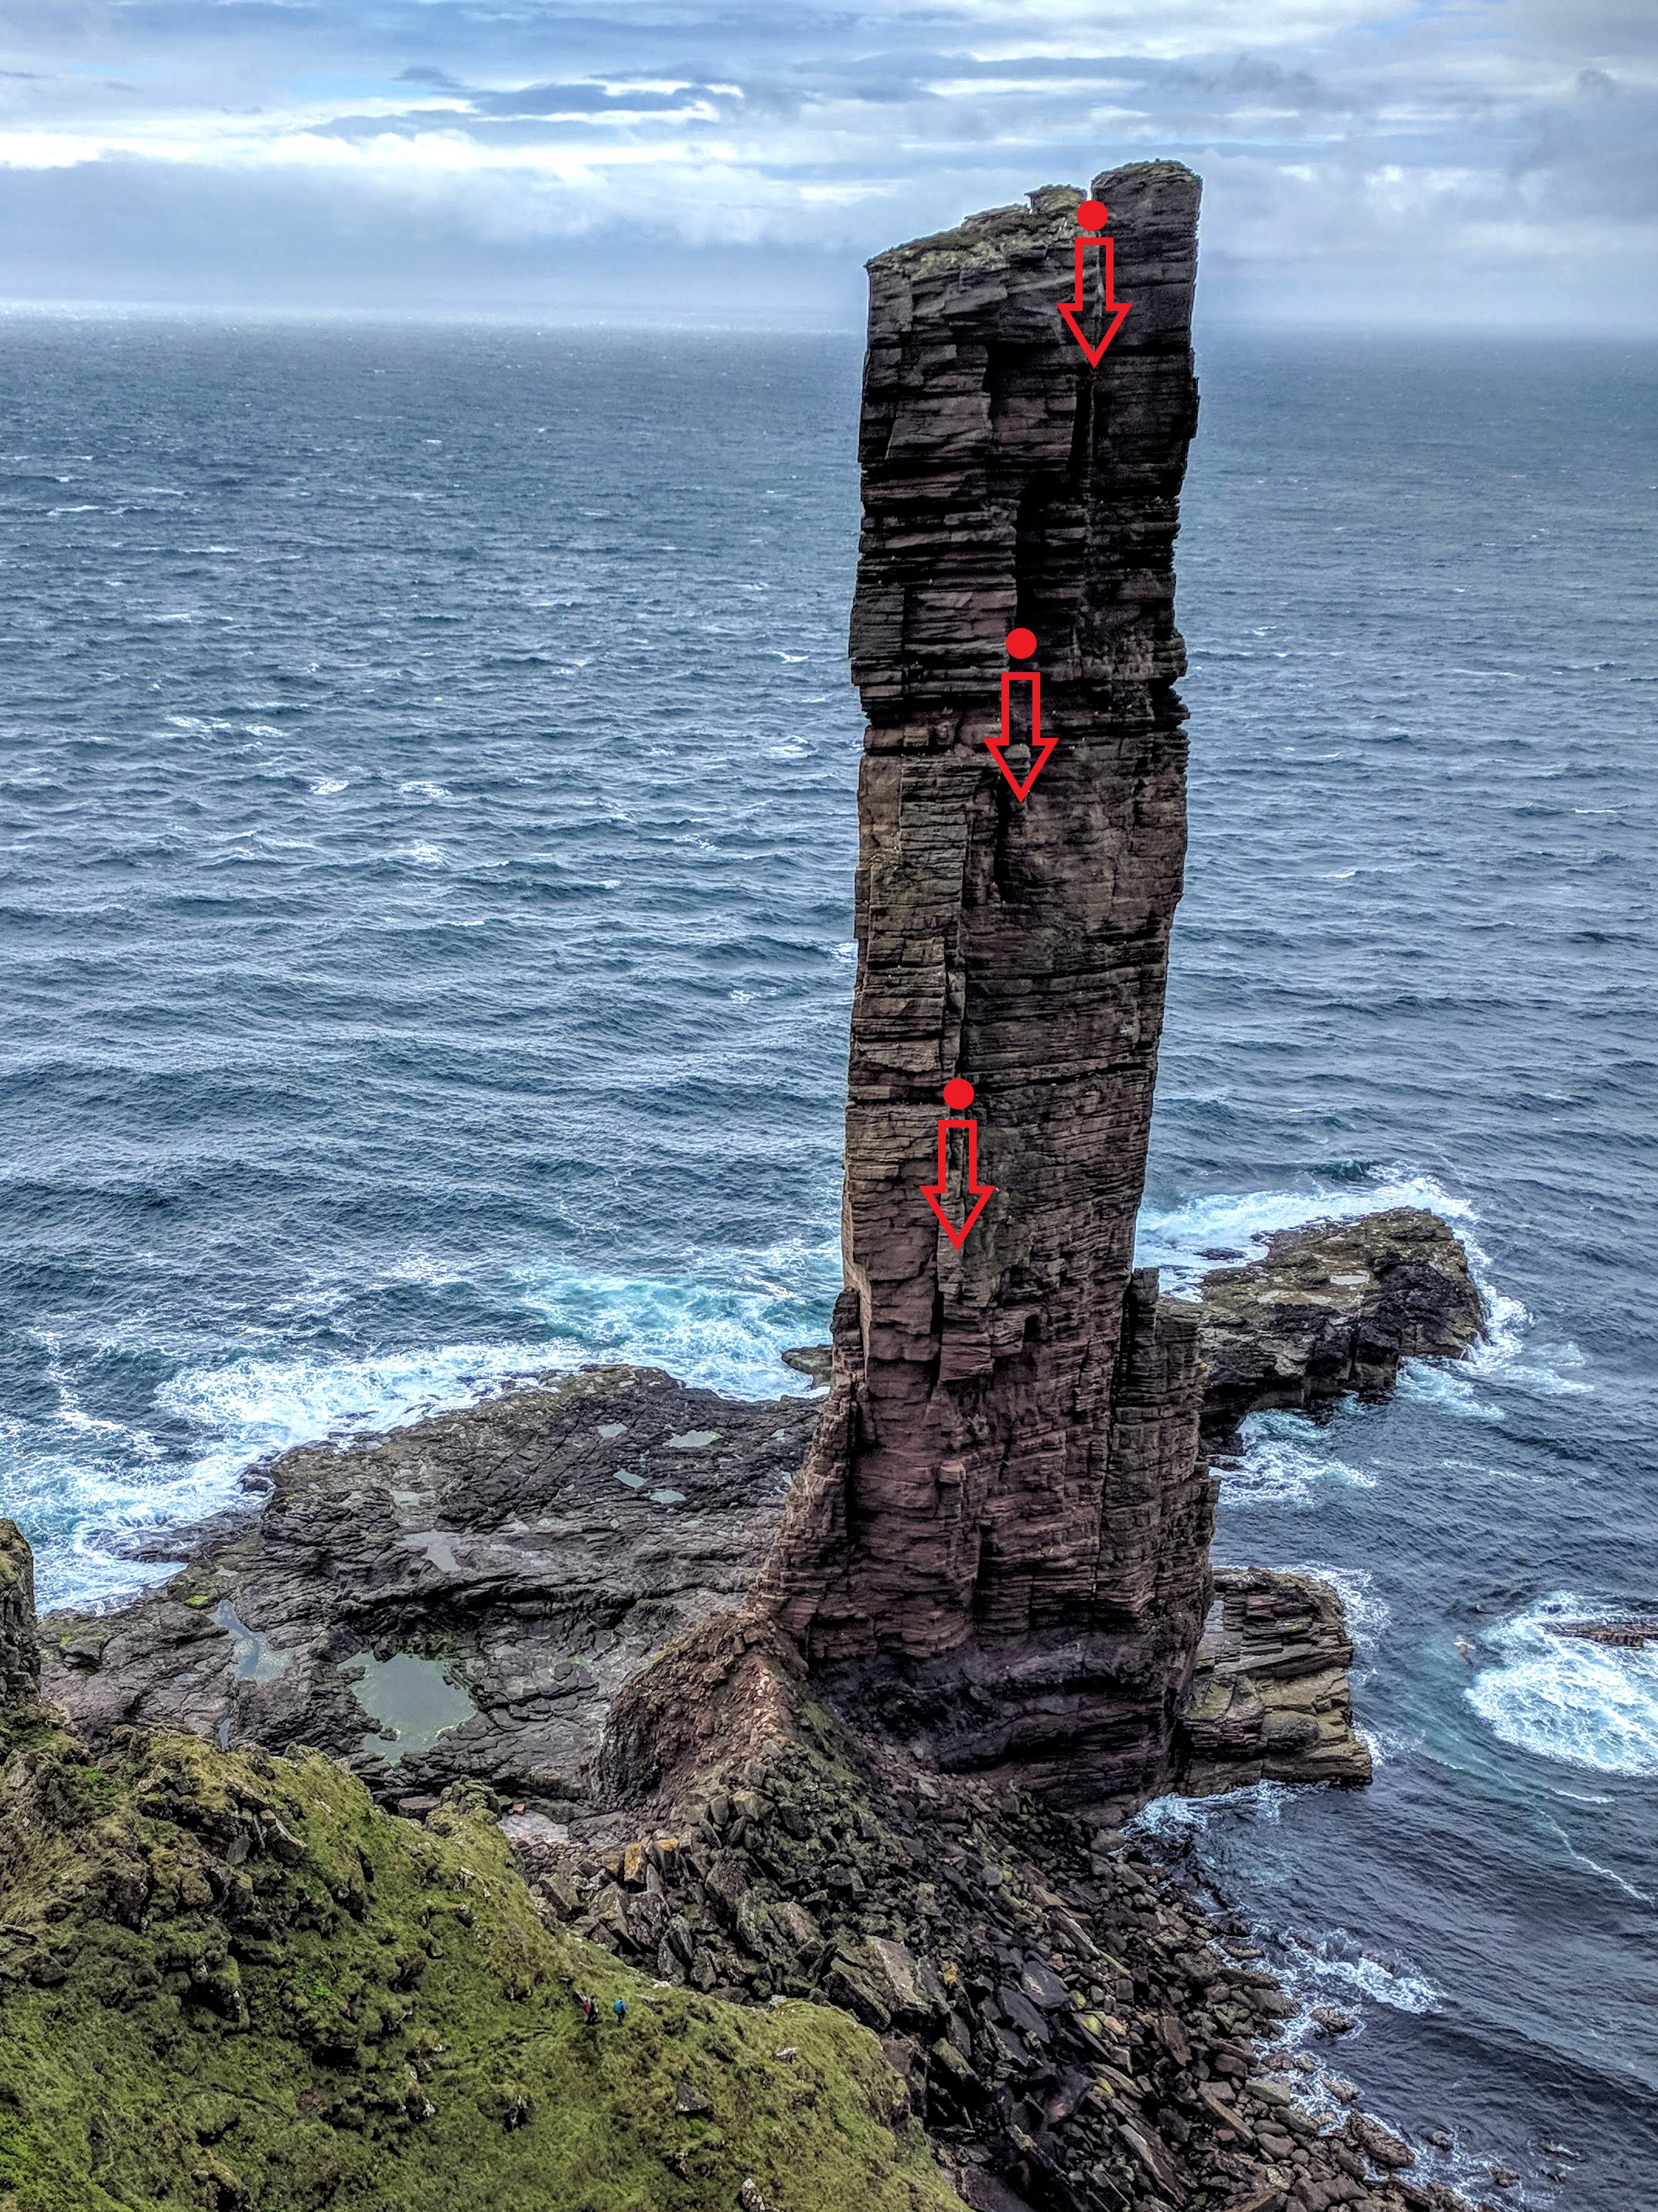 A picture showing the old man of hoy with the sea in the background. Red arrows have been drawn at 3 points on the sea stack to show where the abseil points are.